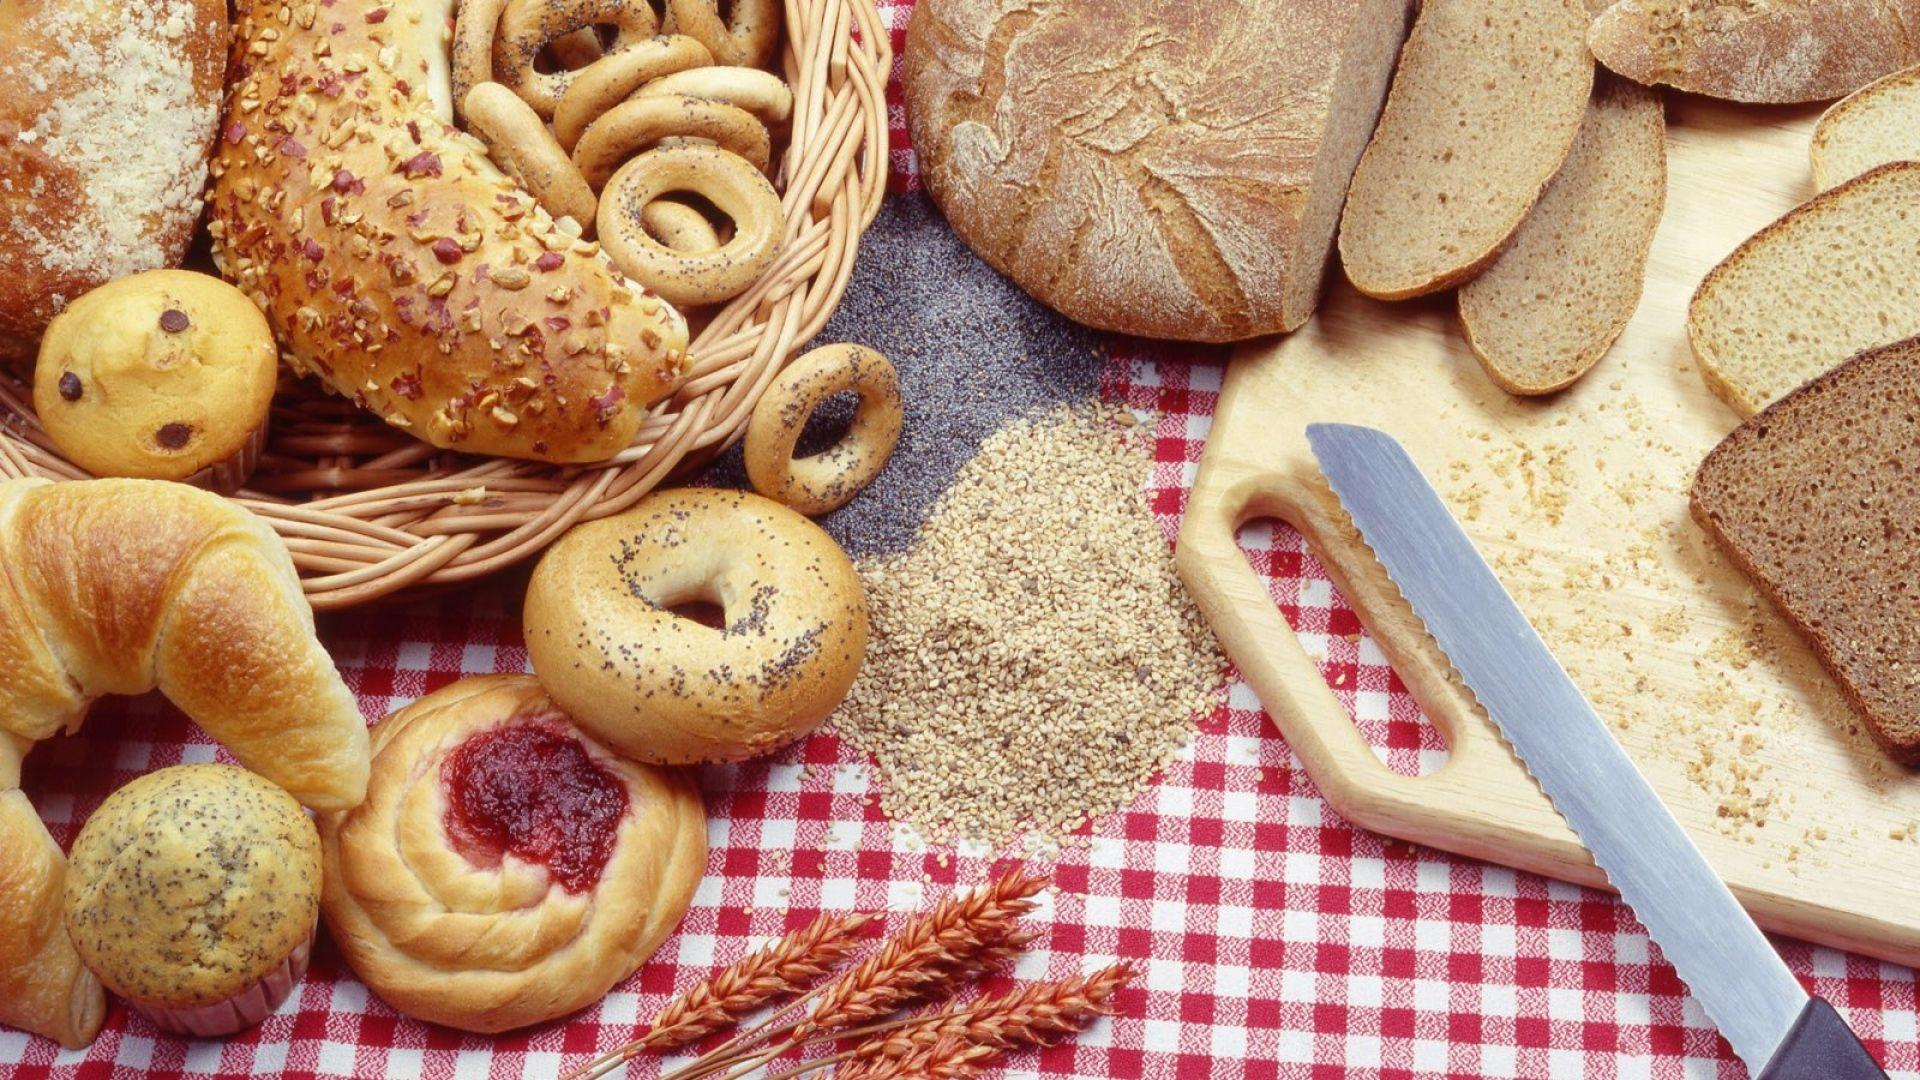 Bakery Wallpapers Wallpaper Cave HD Wallpapers Download Free Images Wallpaper [1000image.com]